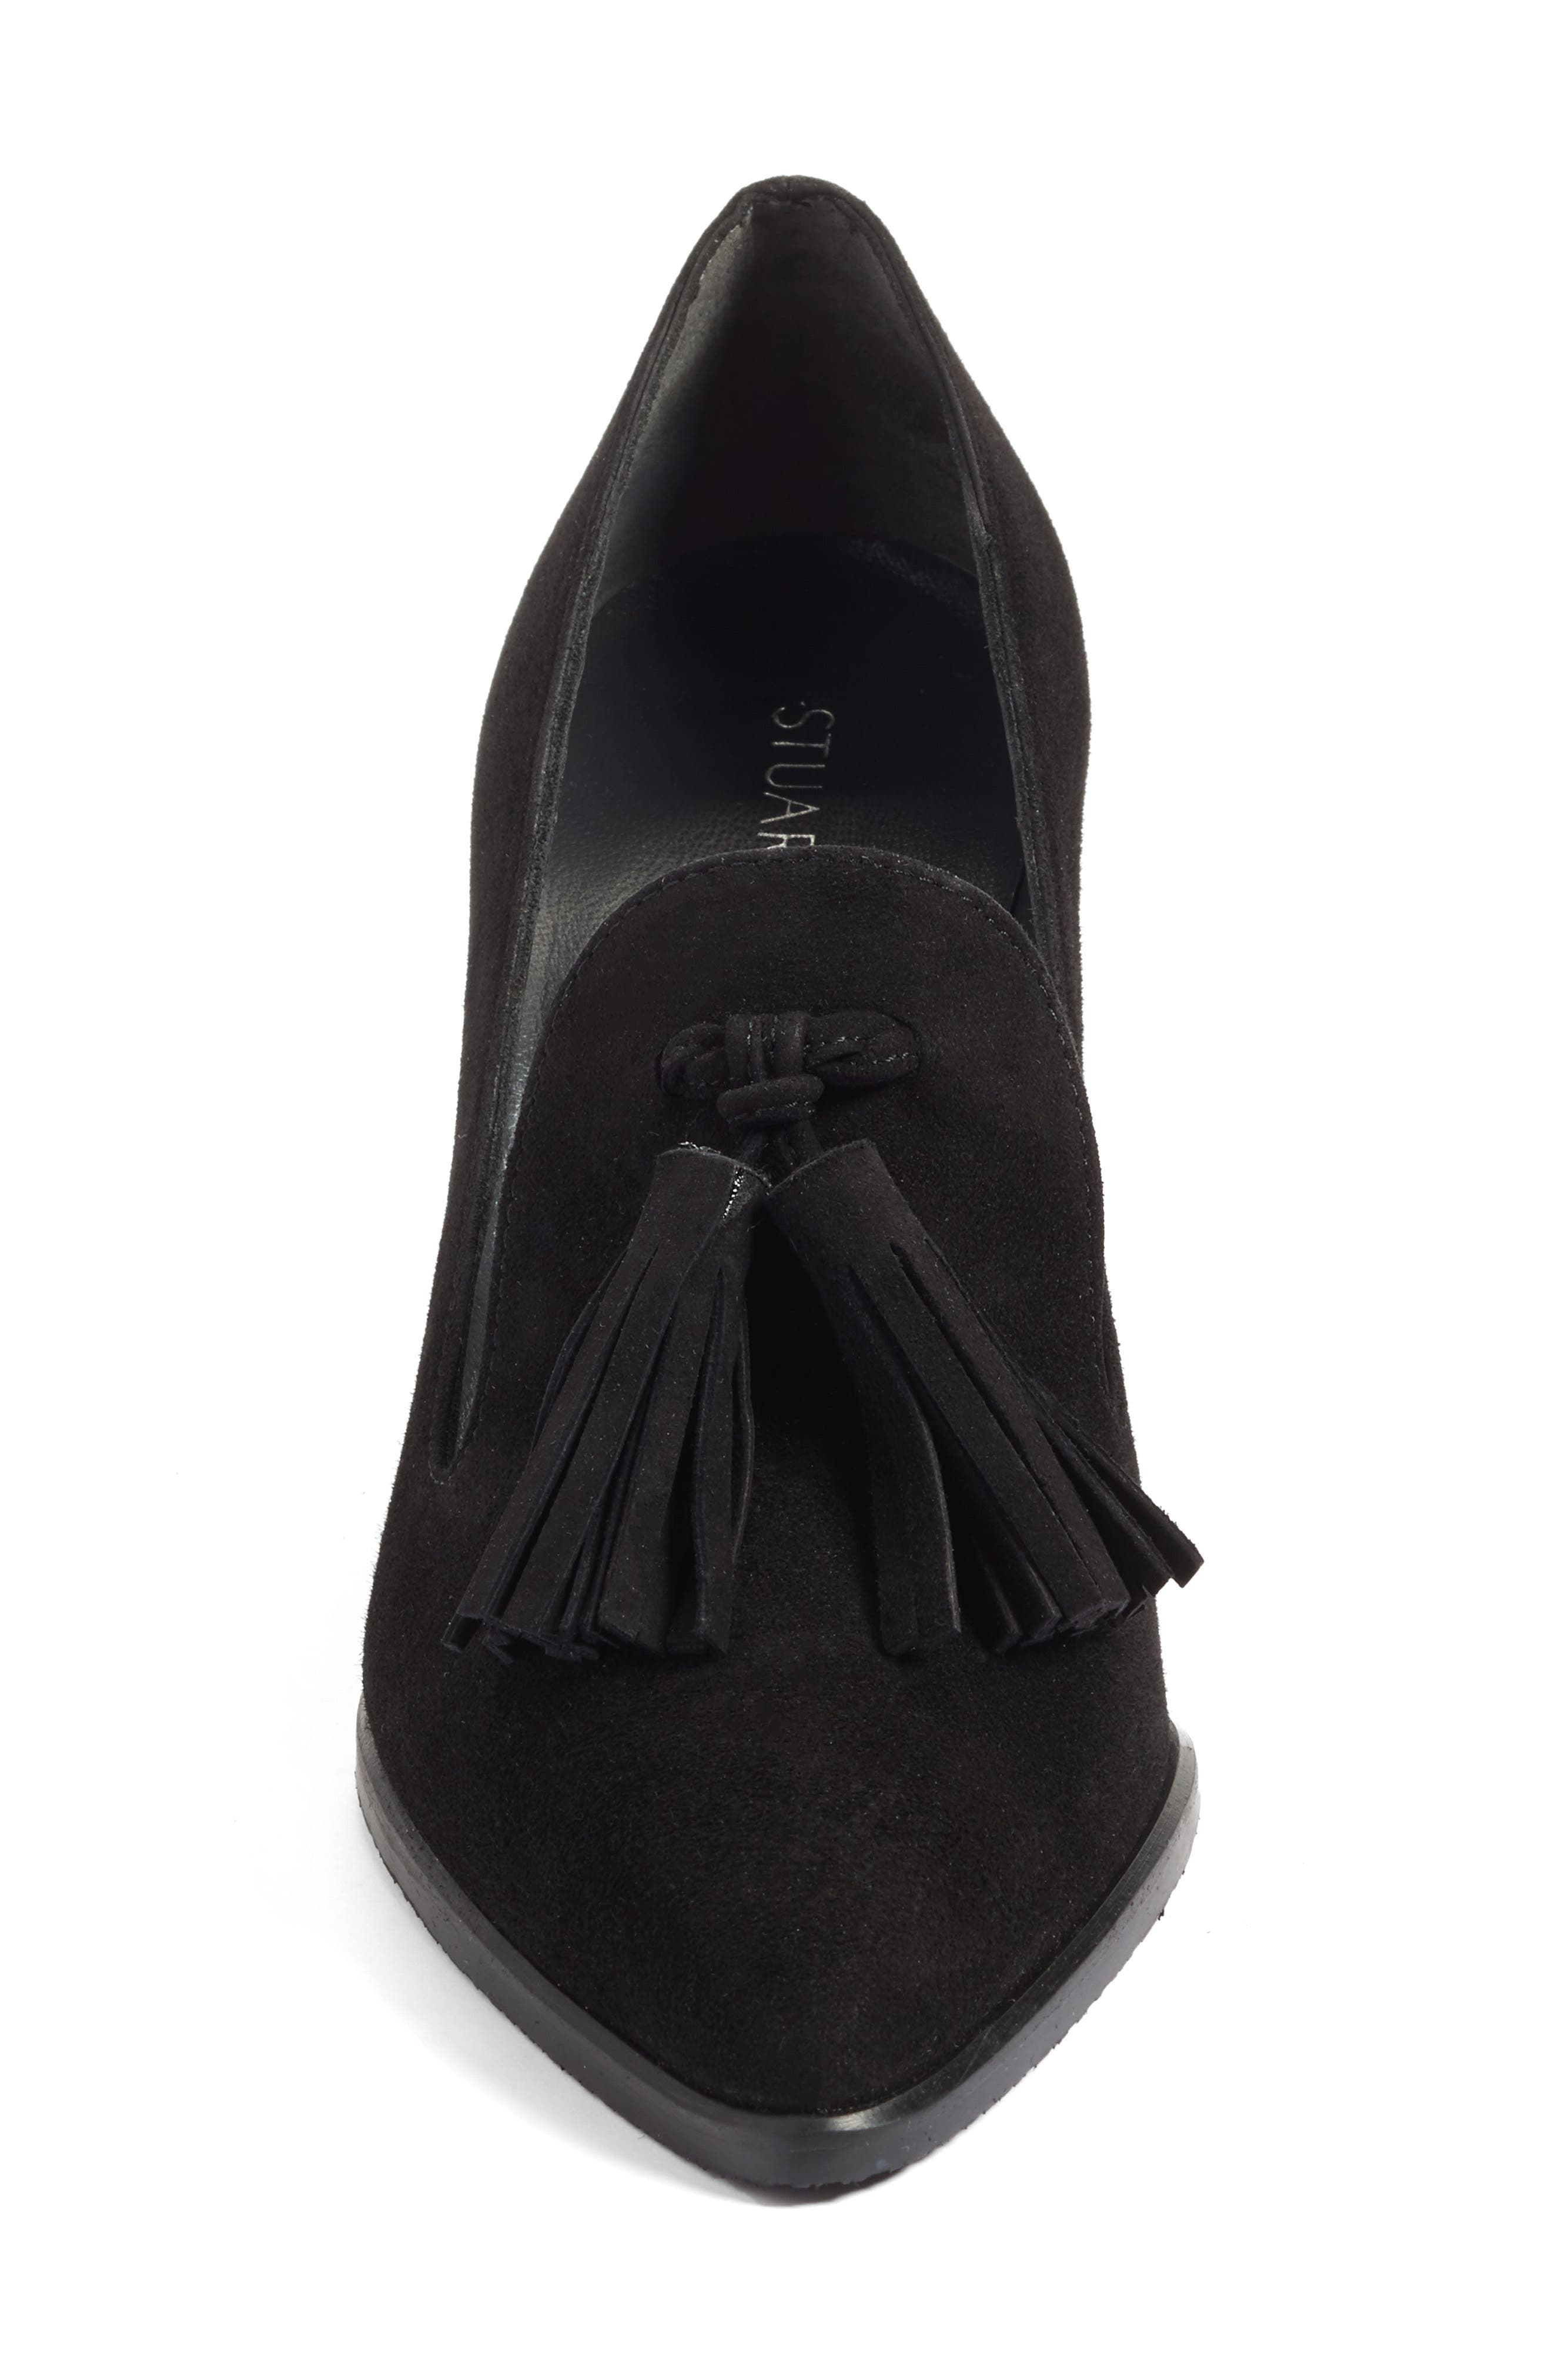 Murphy Tassel Pump,                             Alternate thumbnail 4, color,                             002